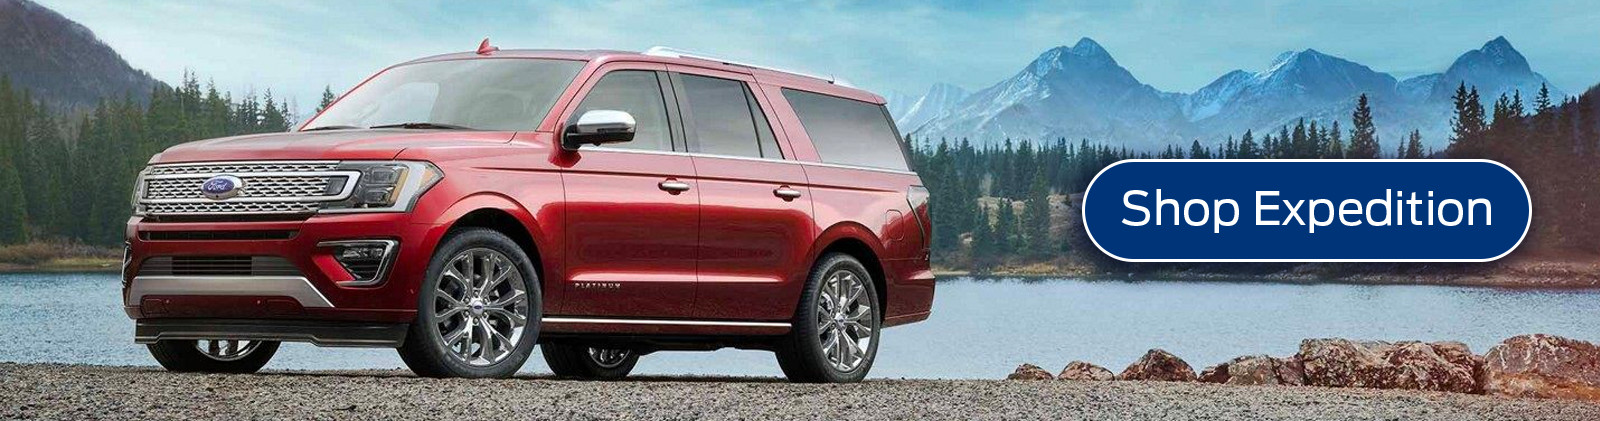 Here Is What J D Power Had To Said About The Ford Expedition Ford Mustang And The Ford Super Duty